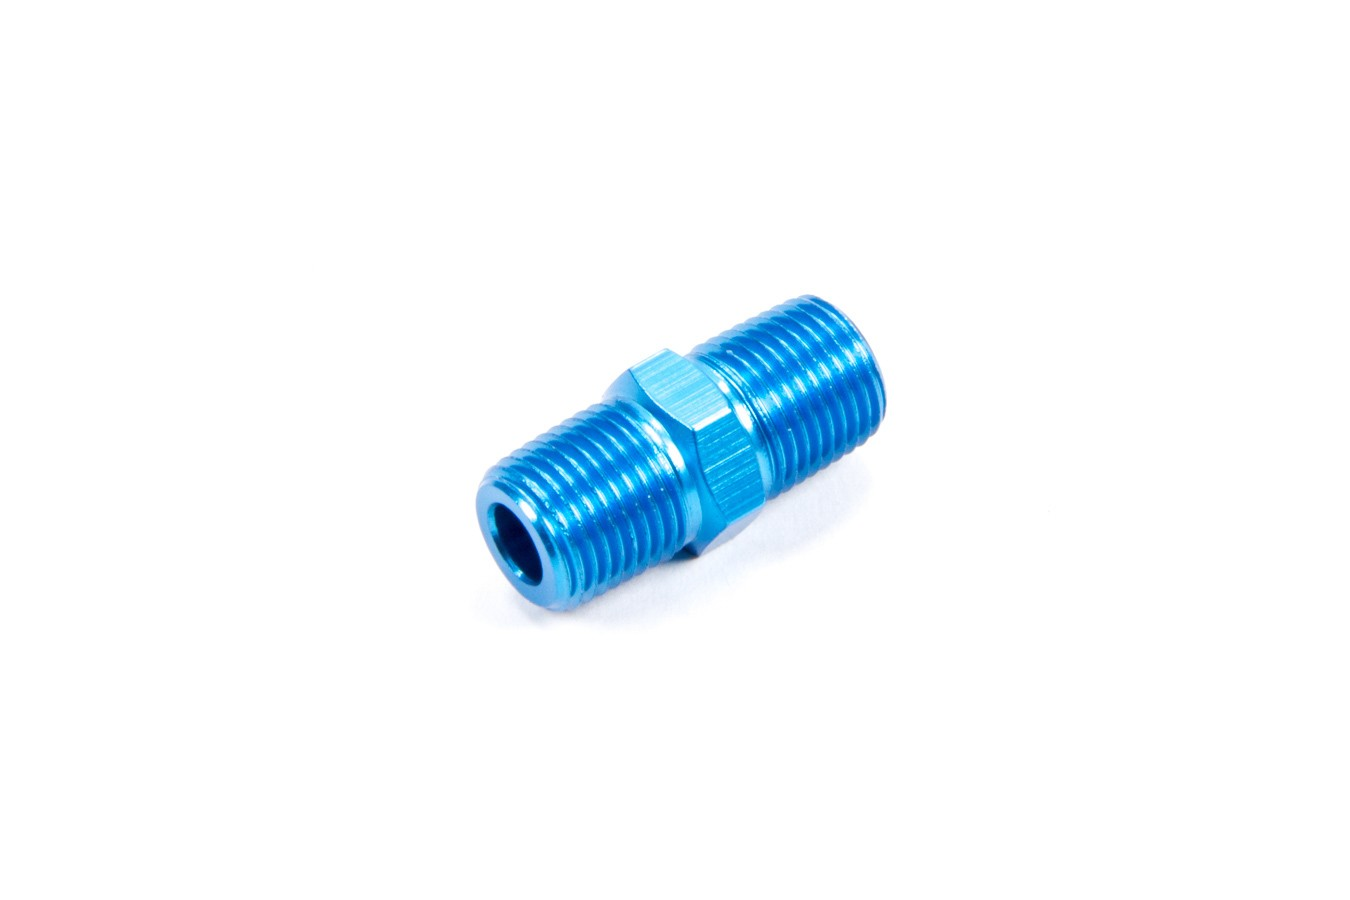 Fragola 491101 Fitting, Adapter, Straight, 1/8 in NPT Male to 1/8 in NPT Male, Aluminum, Blue Anodize, Each